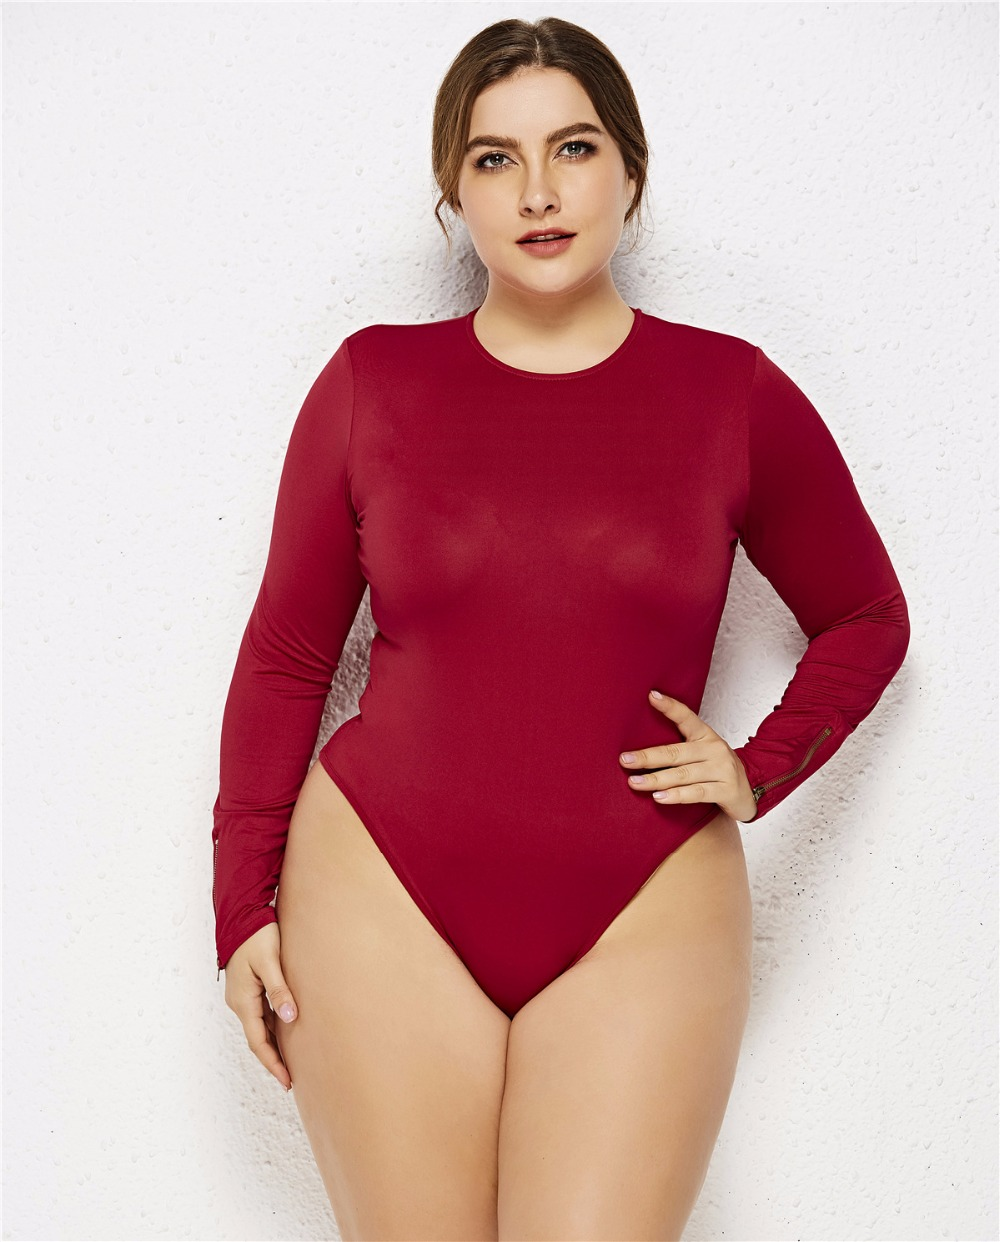 b6fb6fc6db5 Details about 6XL Casual Jumpsuits Women Long Sleeve Plus Size Sexy  Bodysuit Knitted Romper